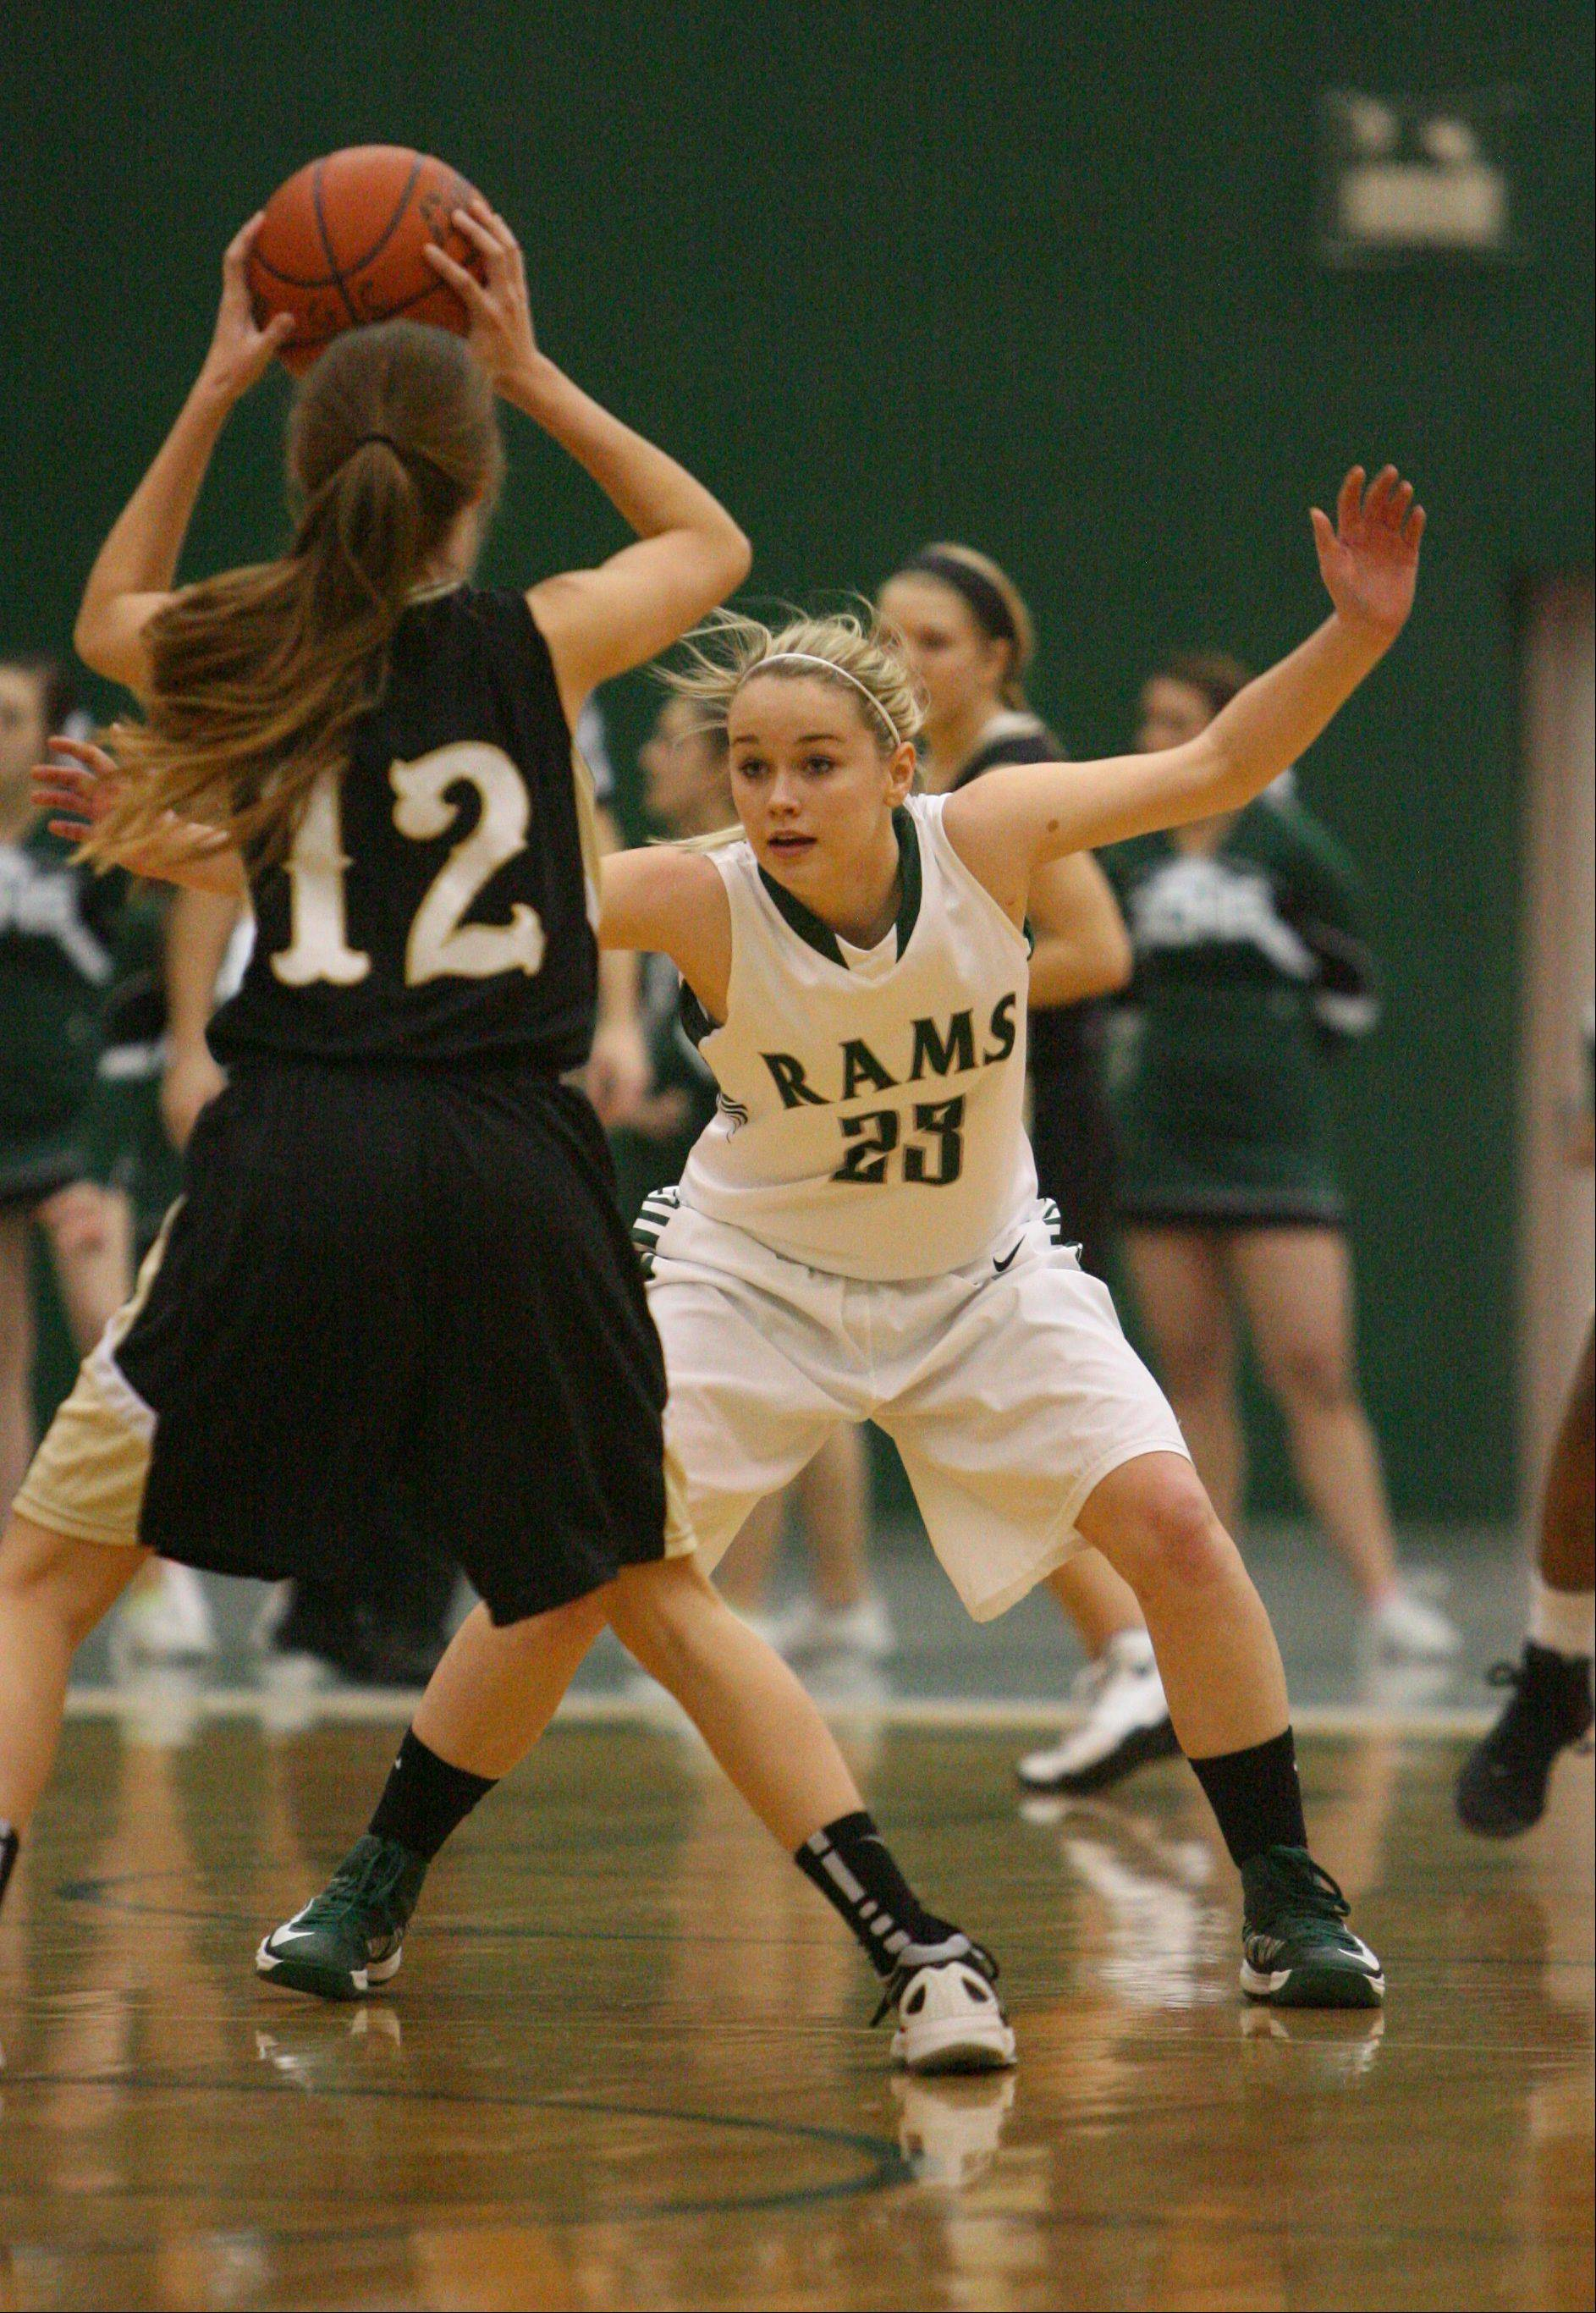 Images from the Grayslake North at Grayslake Central girls basketball game on Tuesday, Feb. 5.